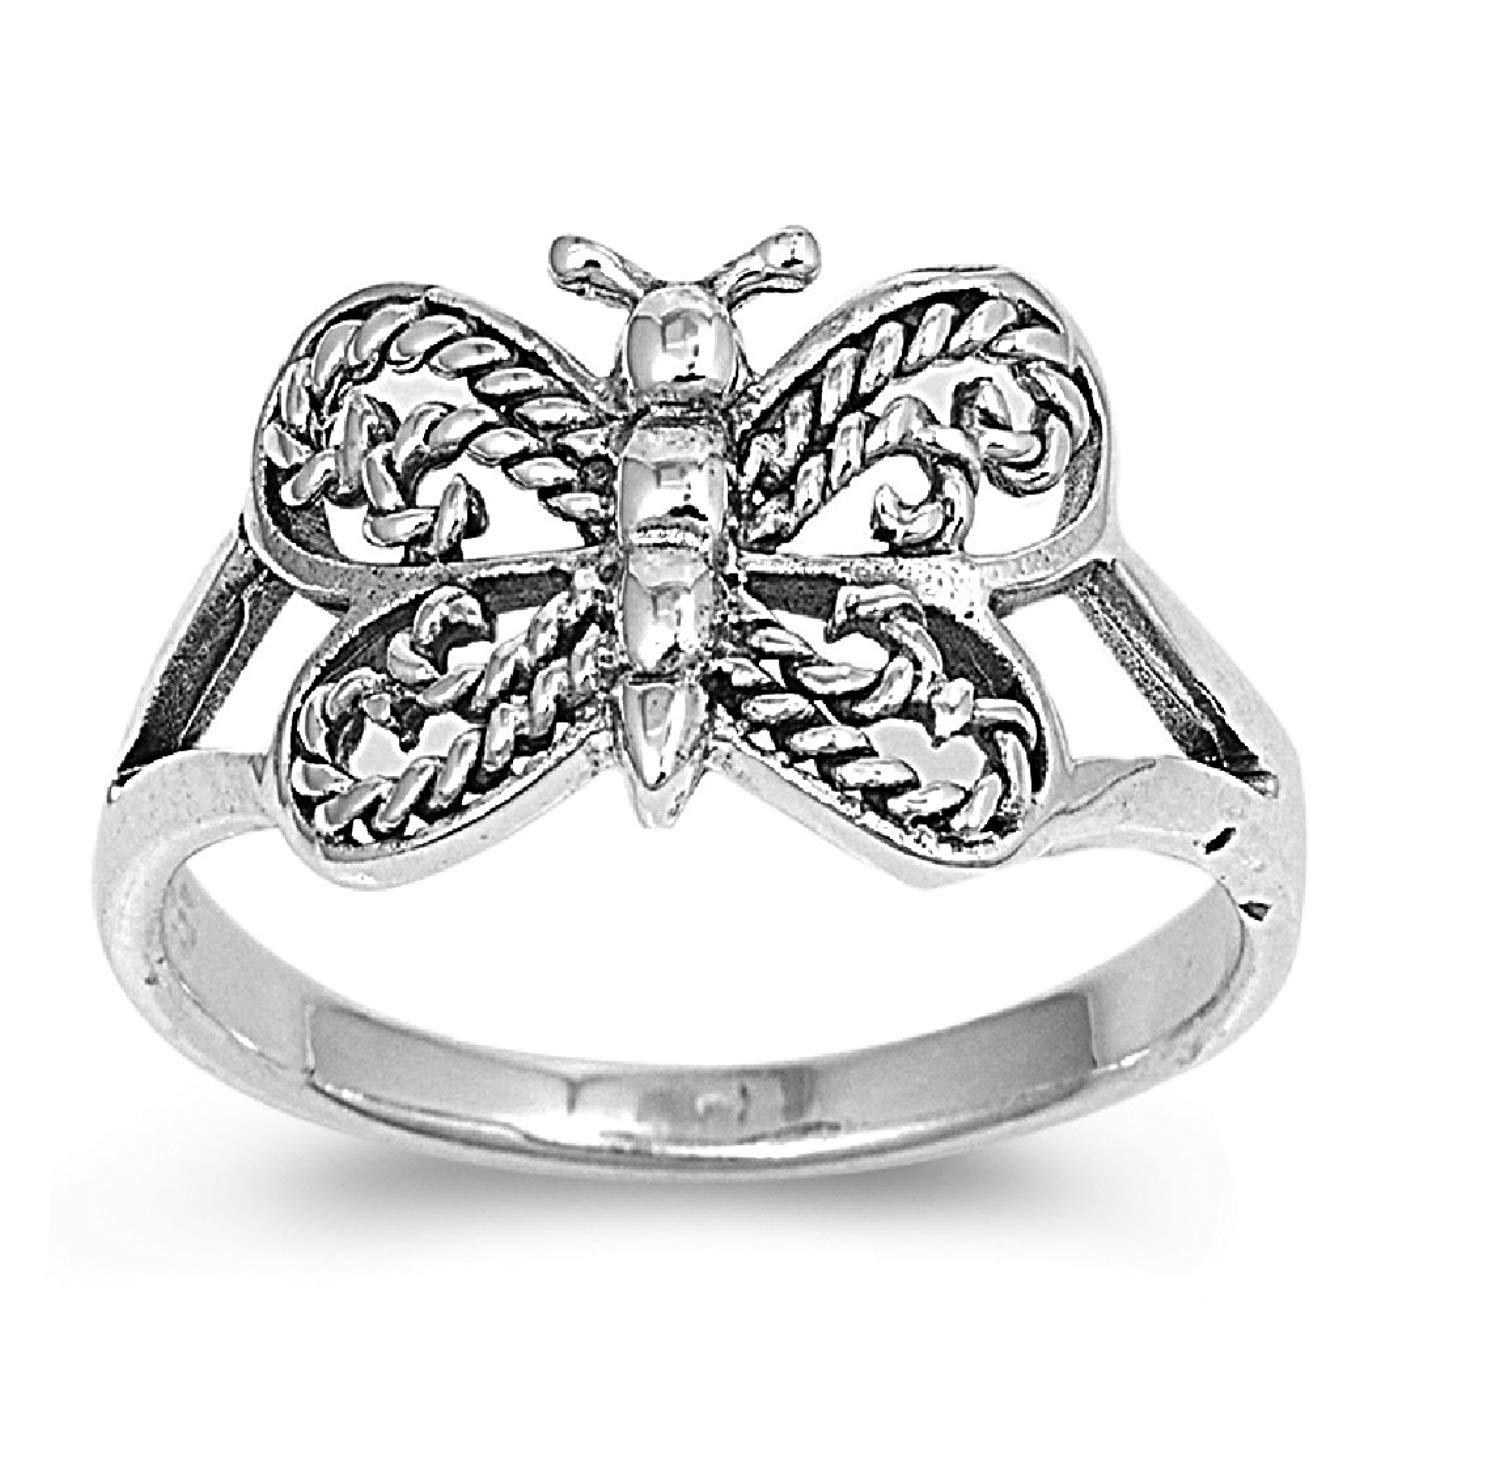 CloseoutWarehouse Butterfly Dharma Petite Rings Sterling Silver 925